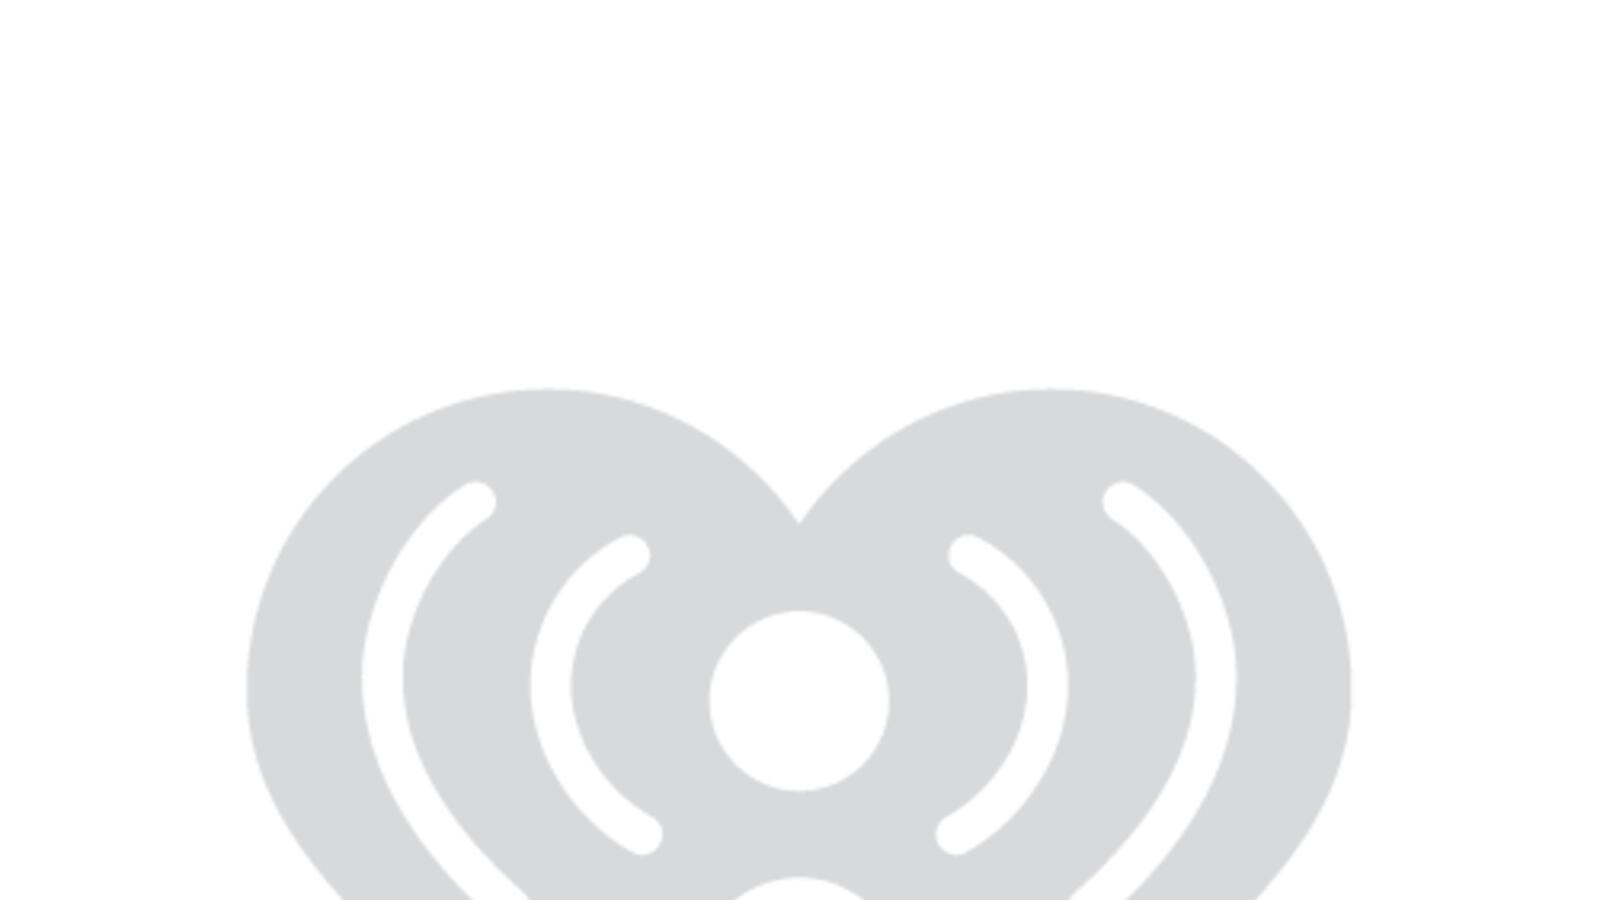 Why People Should Be Happy About the Villainous Astros World Series Berth